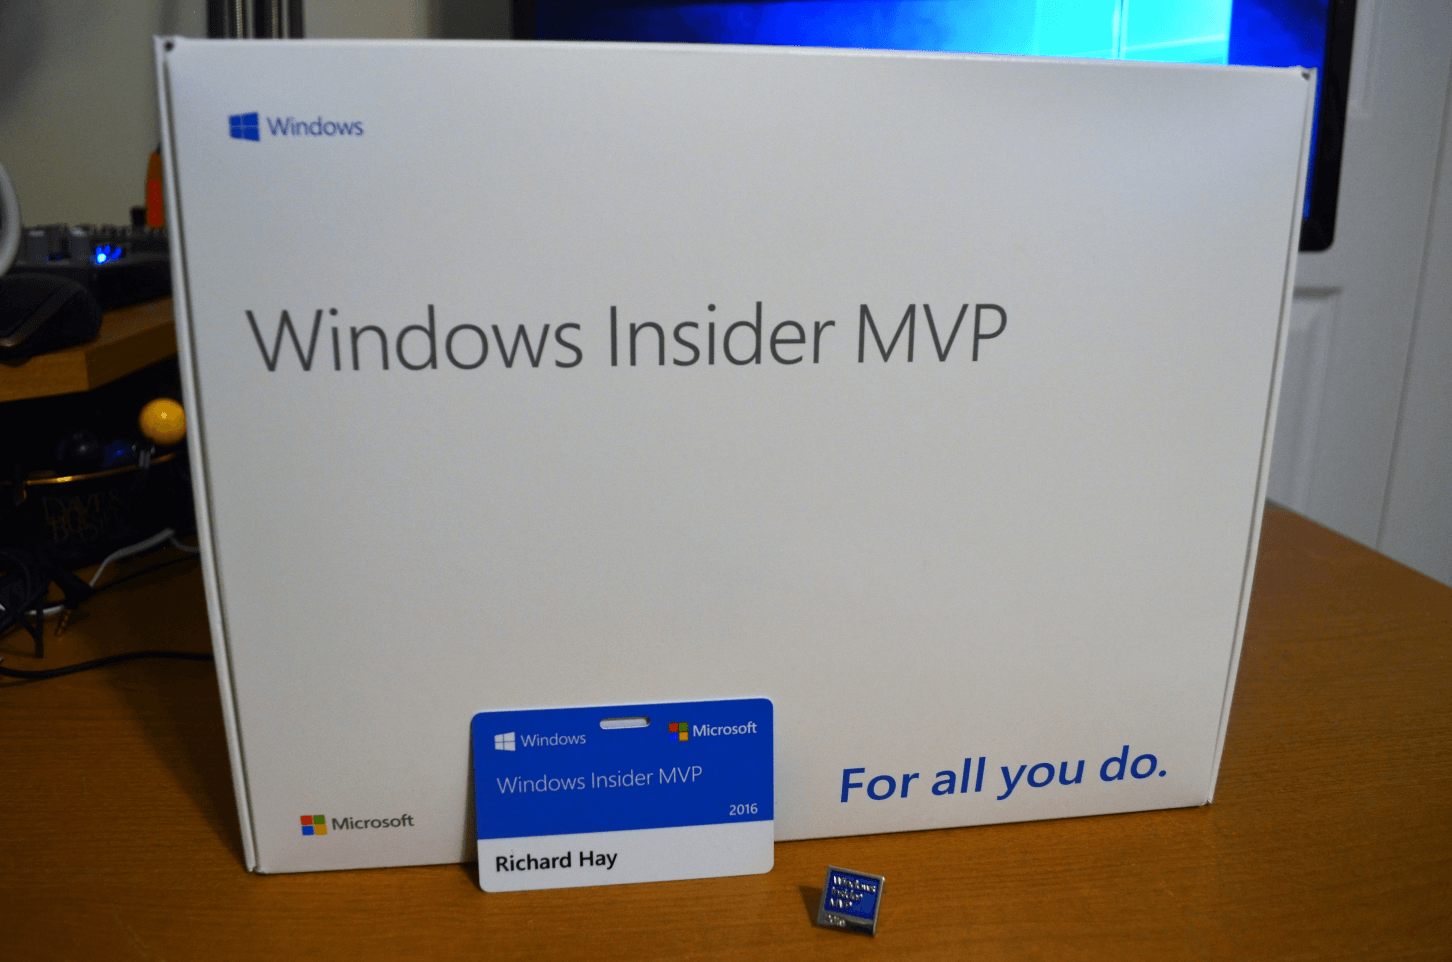 Unboxing the Windows Insider MVP Award